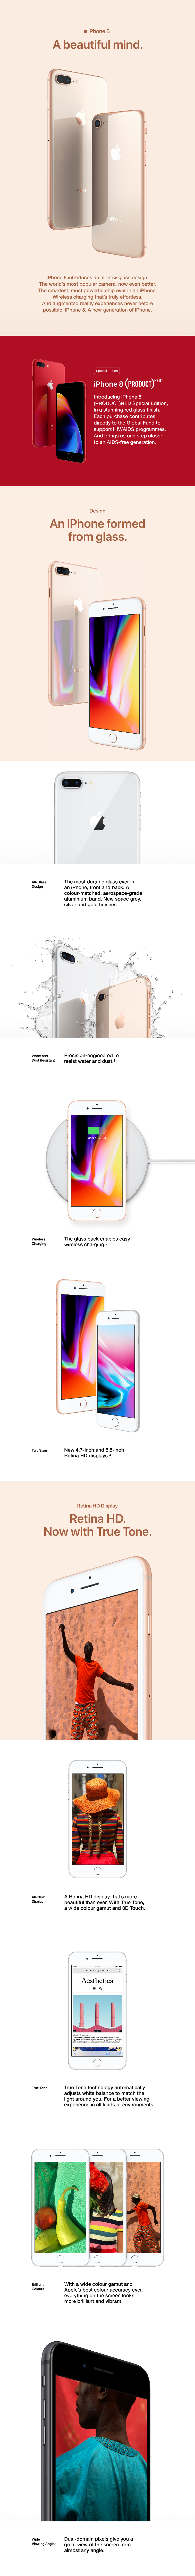 iphone8 page.png